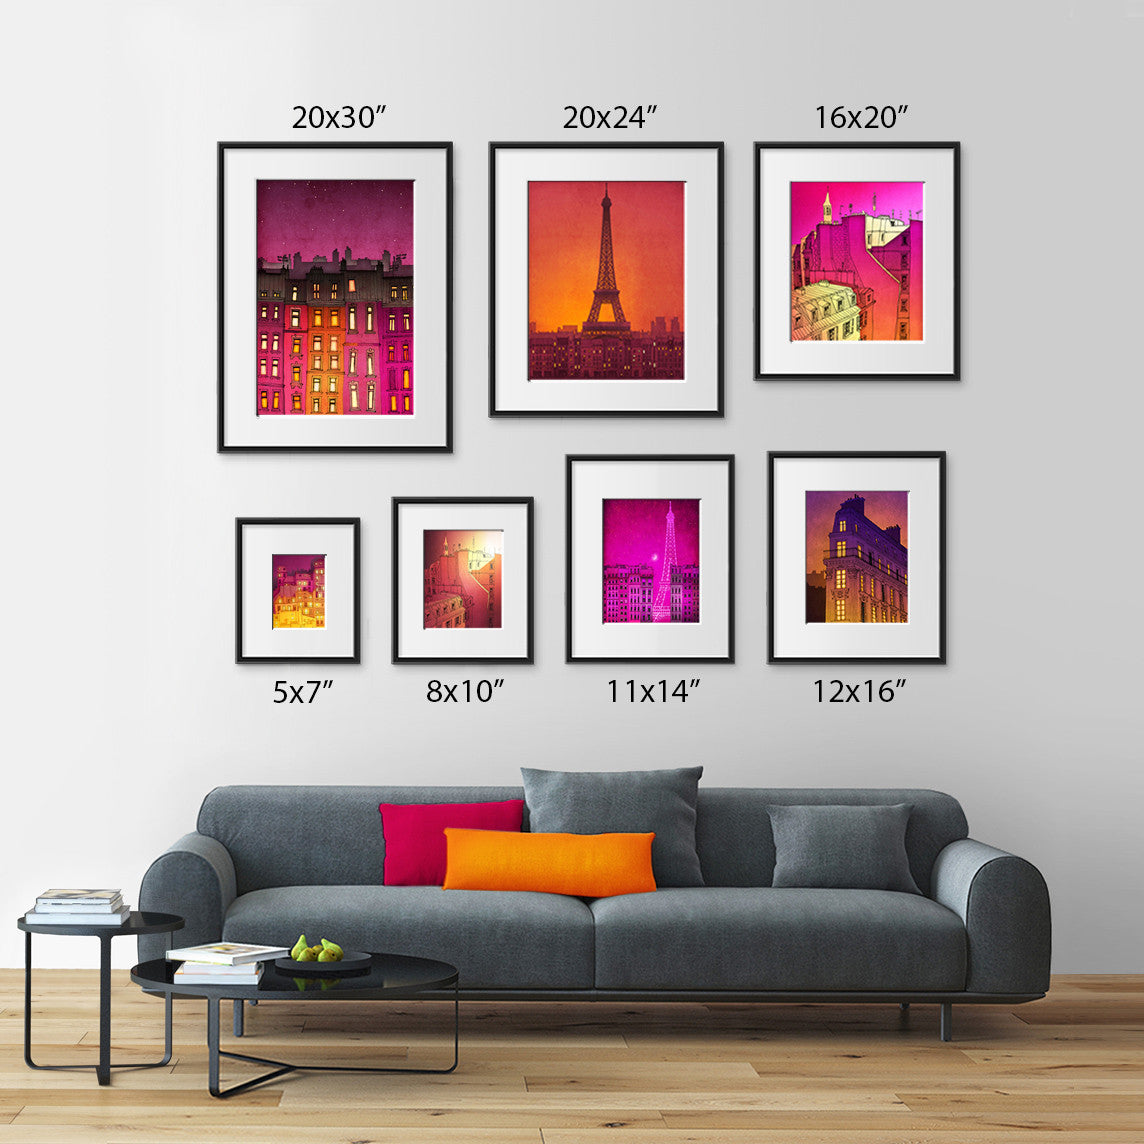 Morning Hope- Paris inspired illustration in bright, purple themed painting for interior makeover